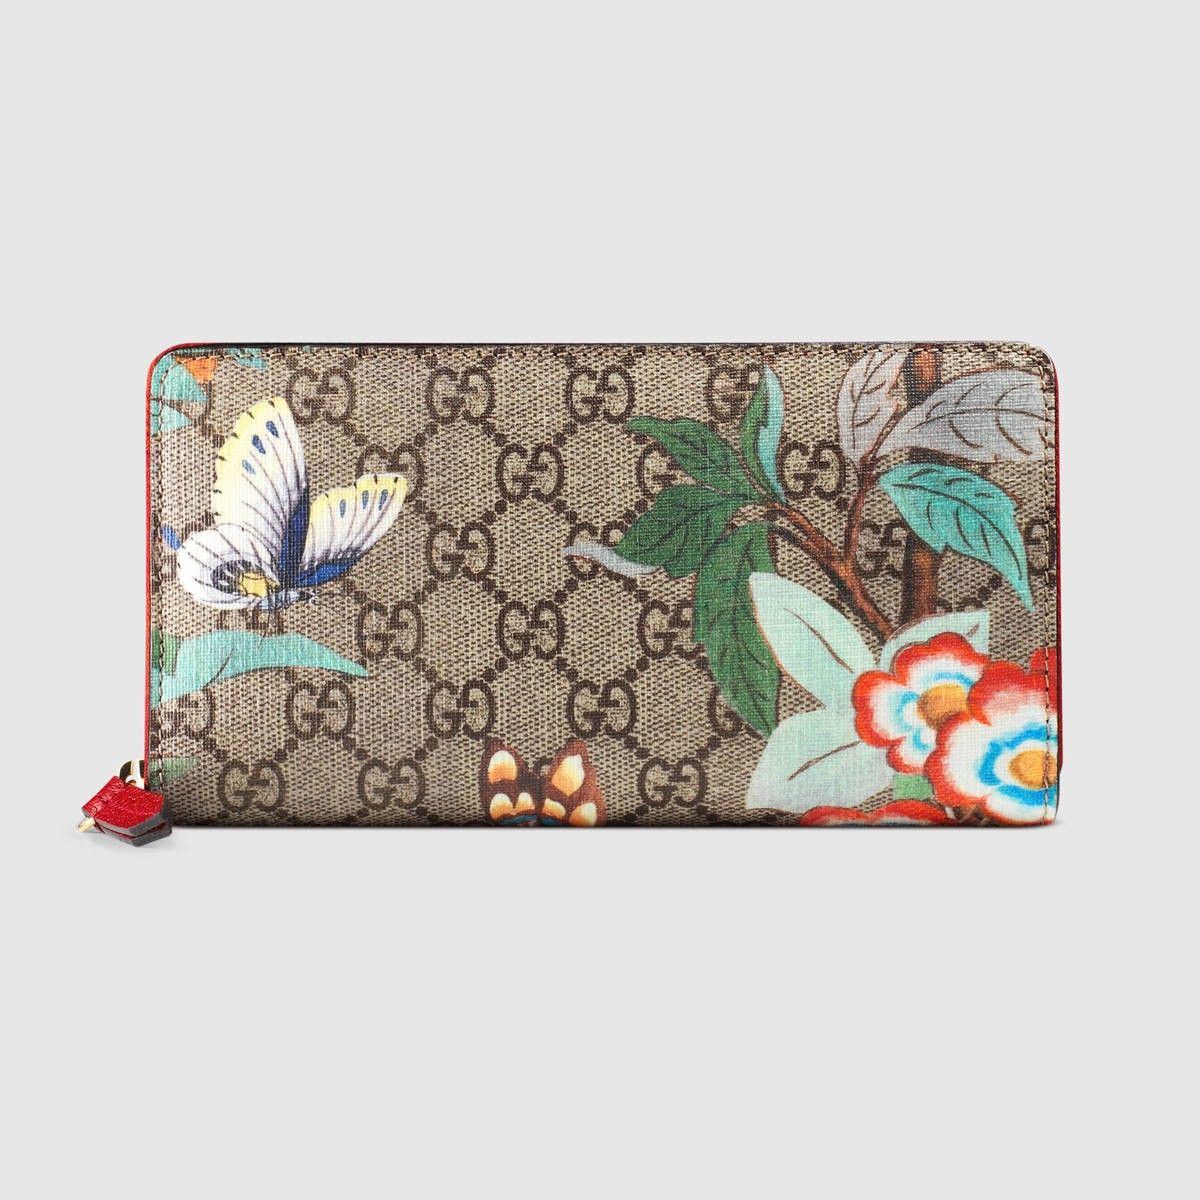 ffded208525 GUCCI Gucci Tian Zip Around Wallet - Gg Supreme Tian.  gucci  all ...